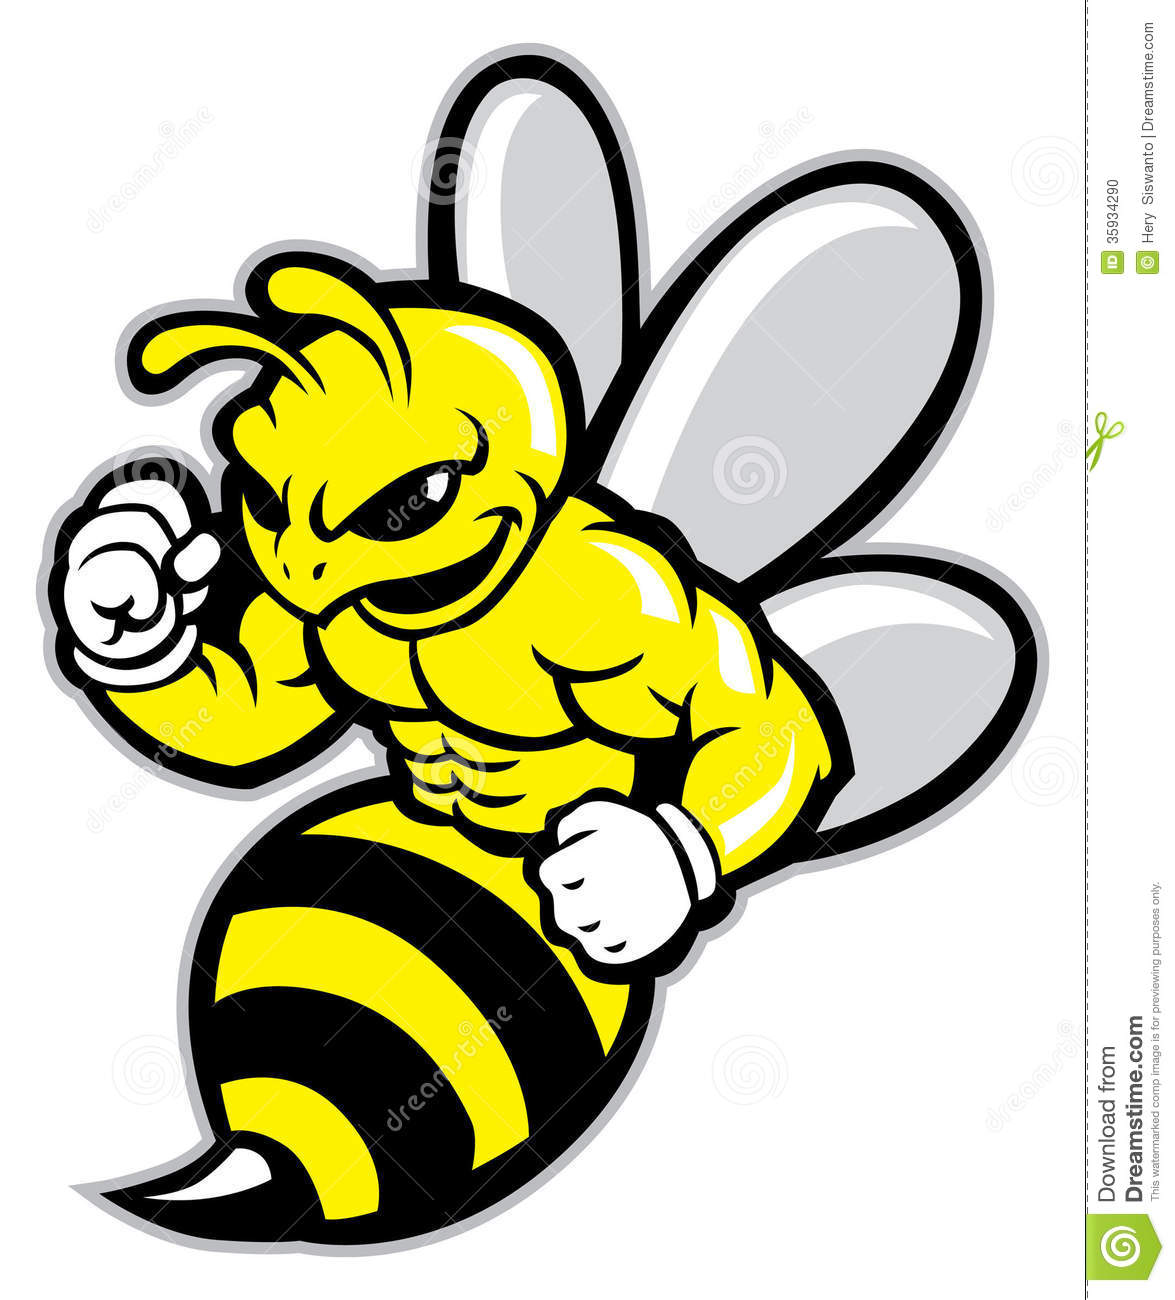 free clip art yellow jacket - photo #41